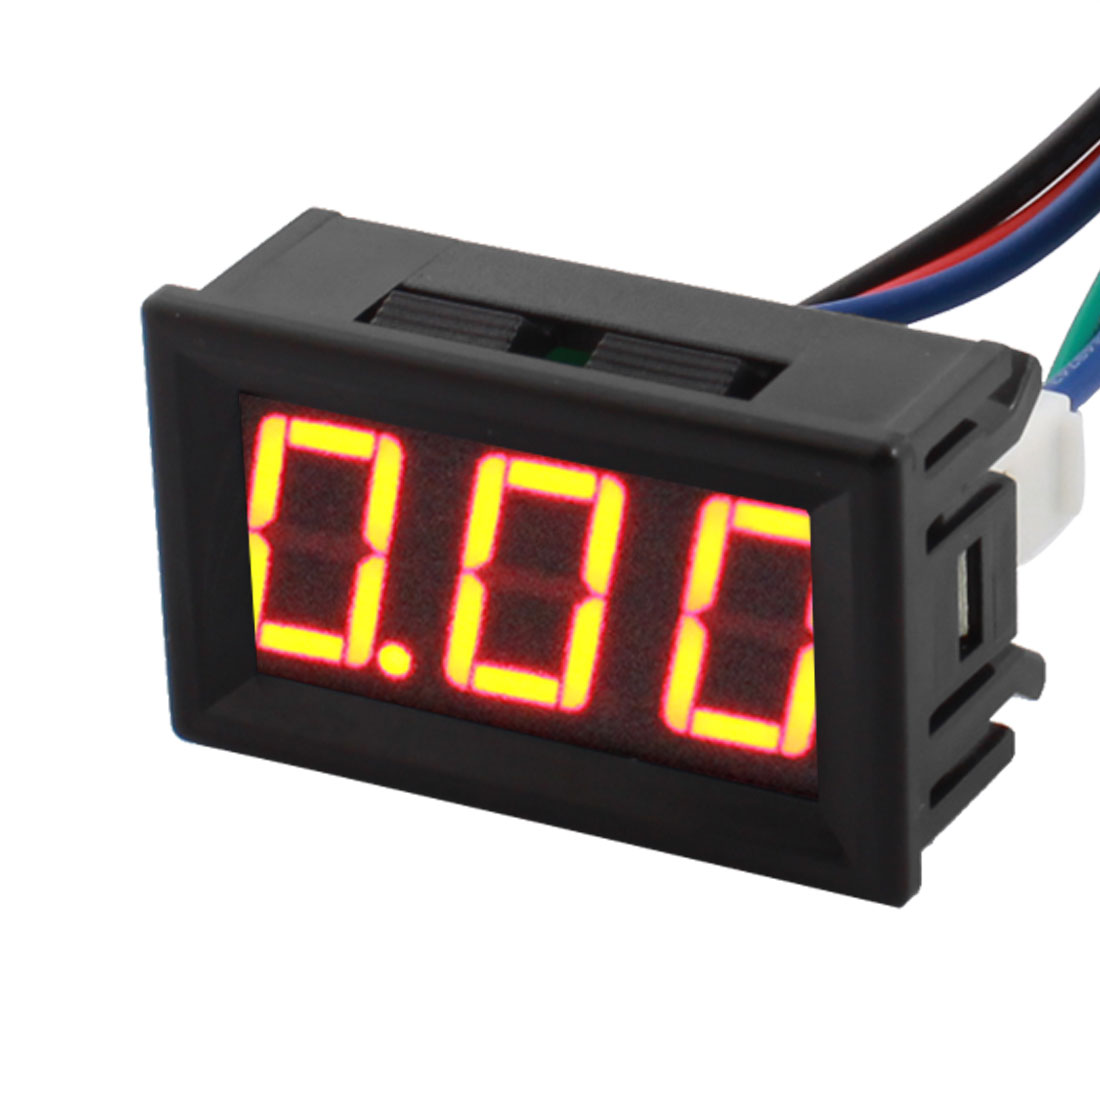 DC 0-10A 7 Segments 3Position Red Digits LED Display Current Ampere Meter Tester Panel Mount Ammeter Gauge wi